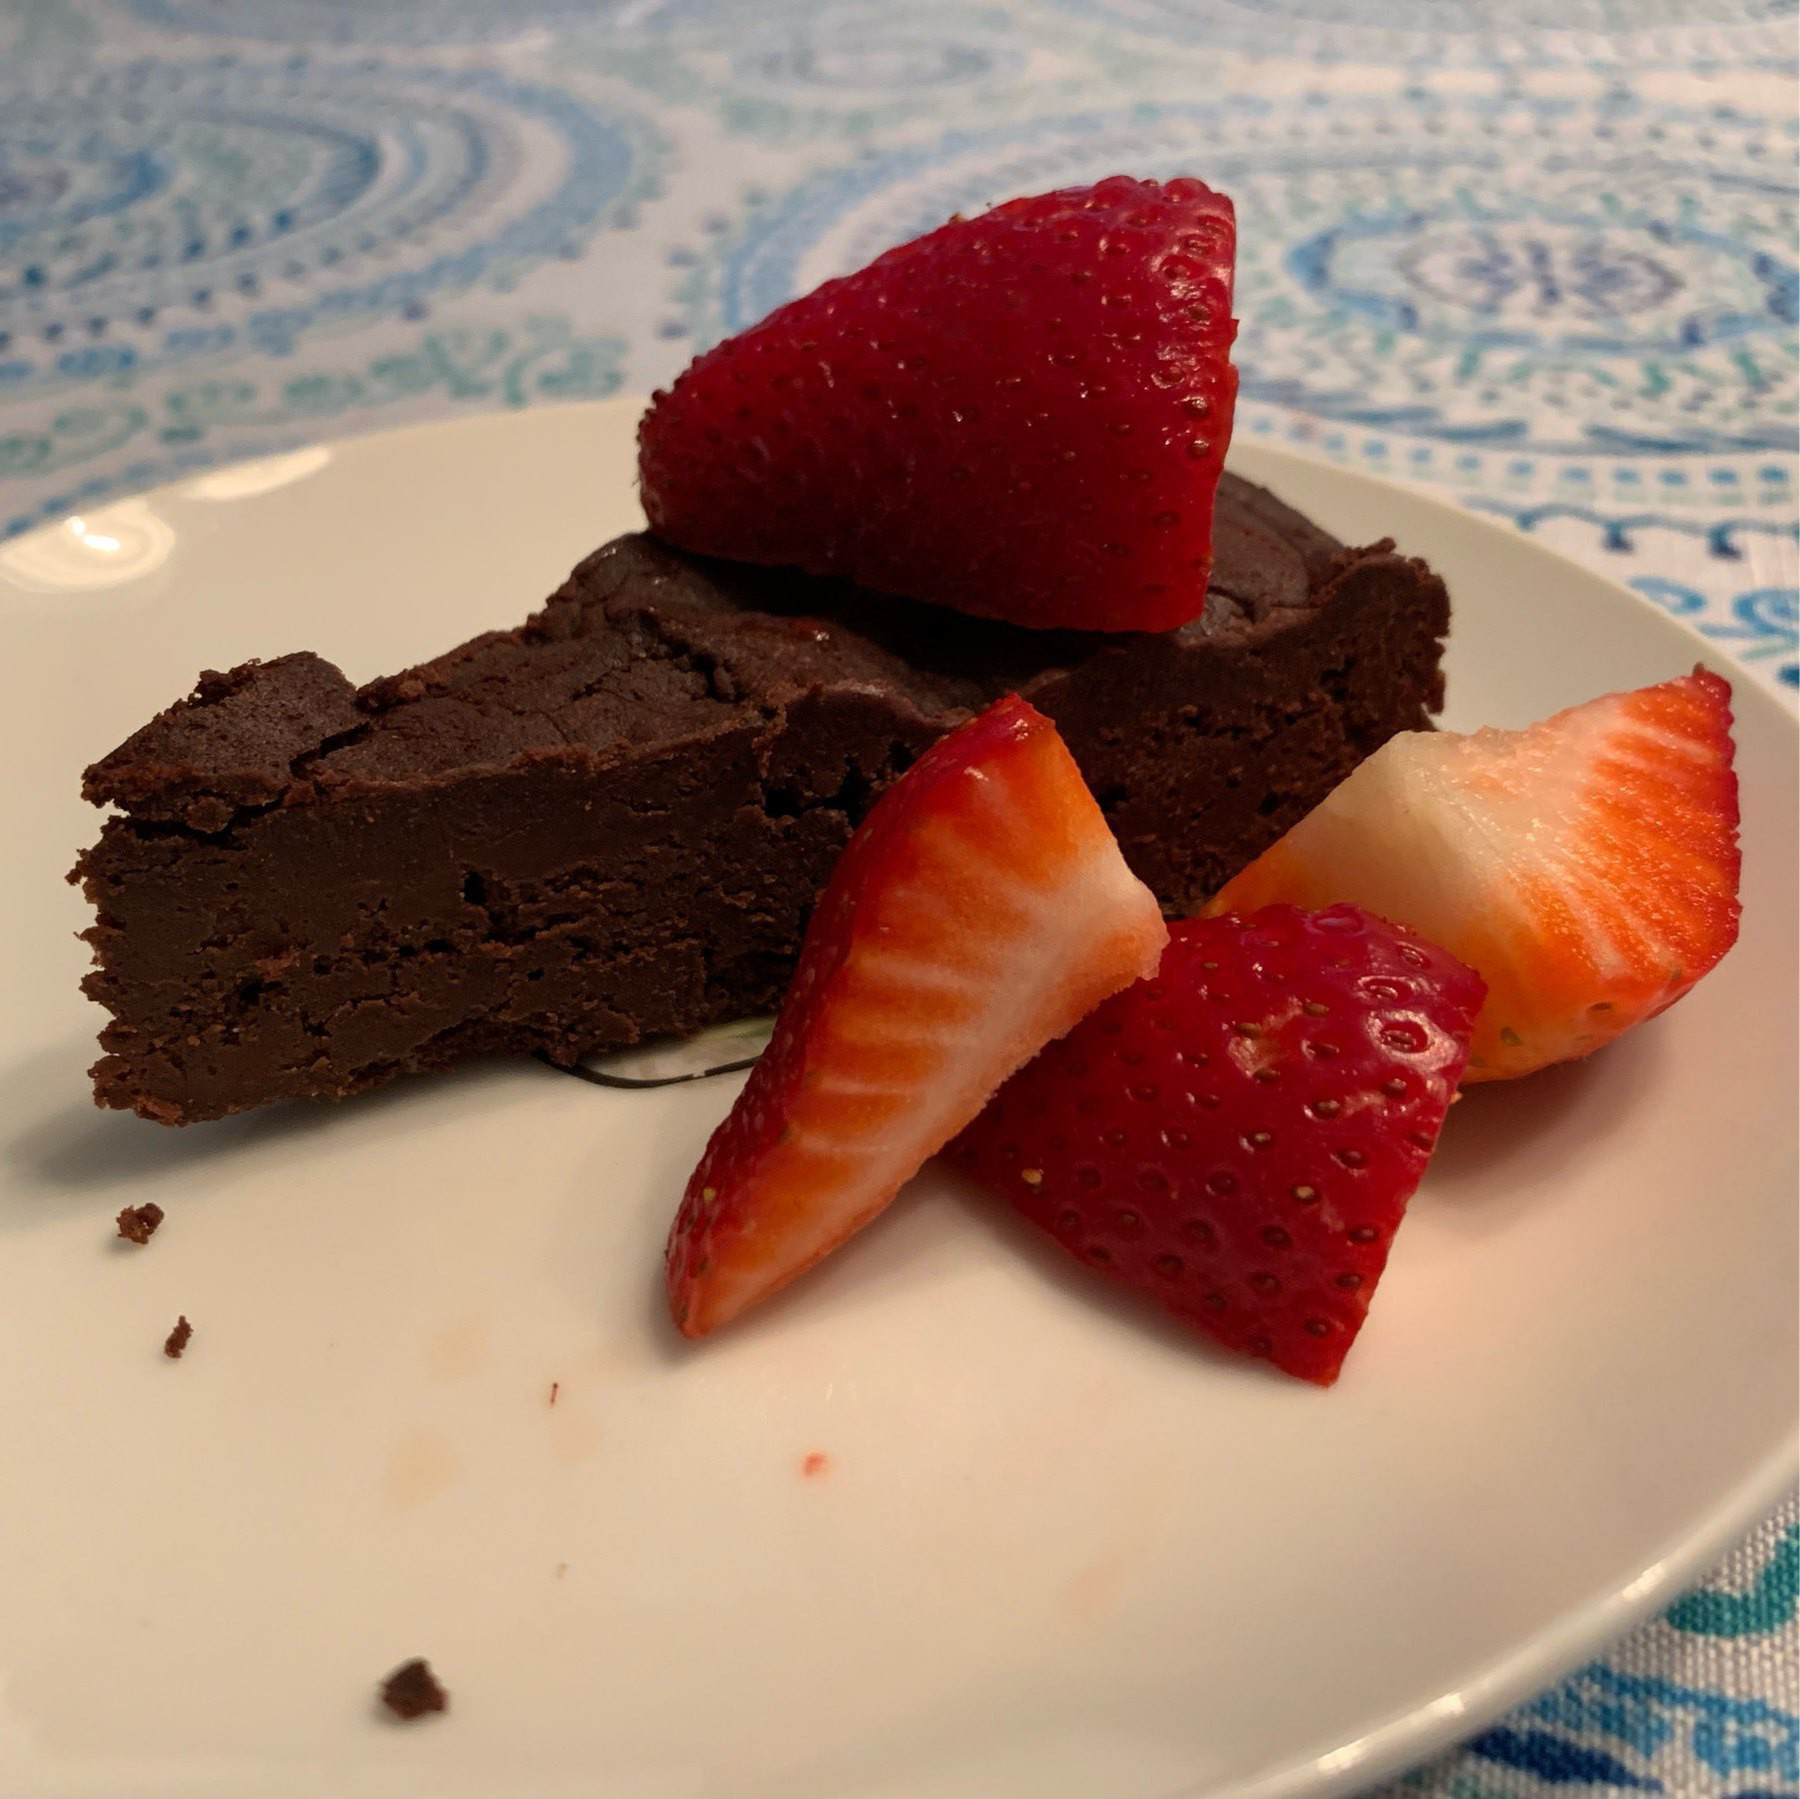 Slice of chocolate torte on a plate, garnished with strawberry quarters